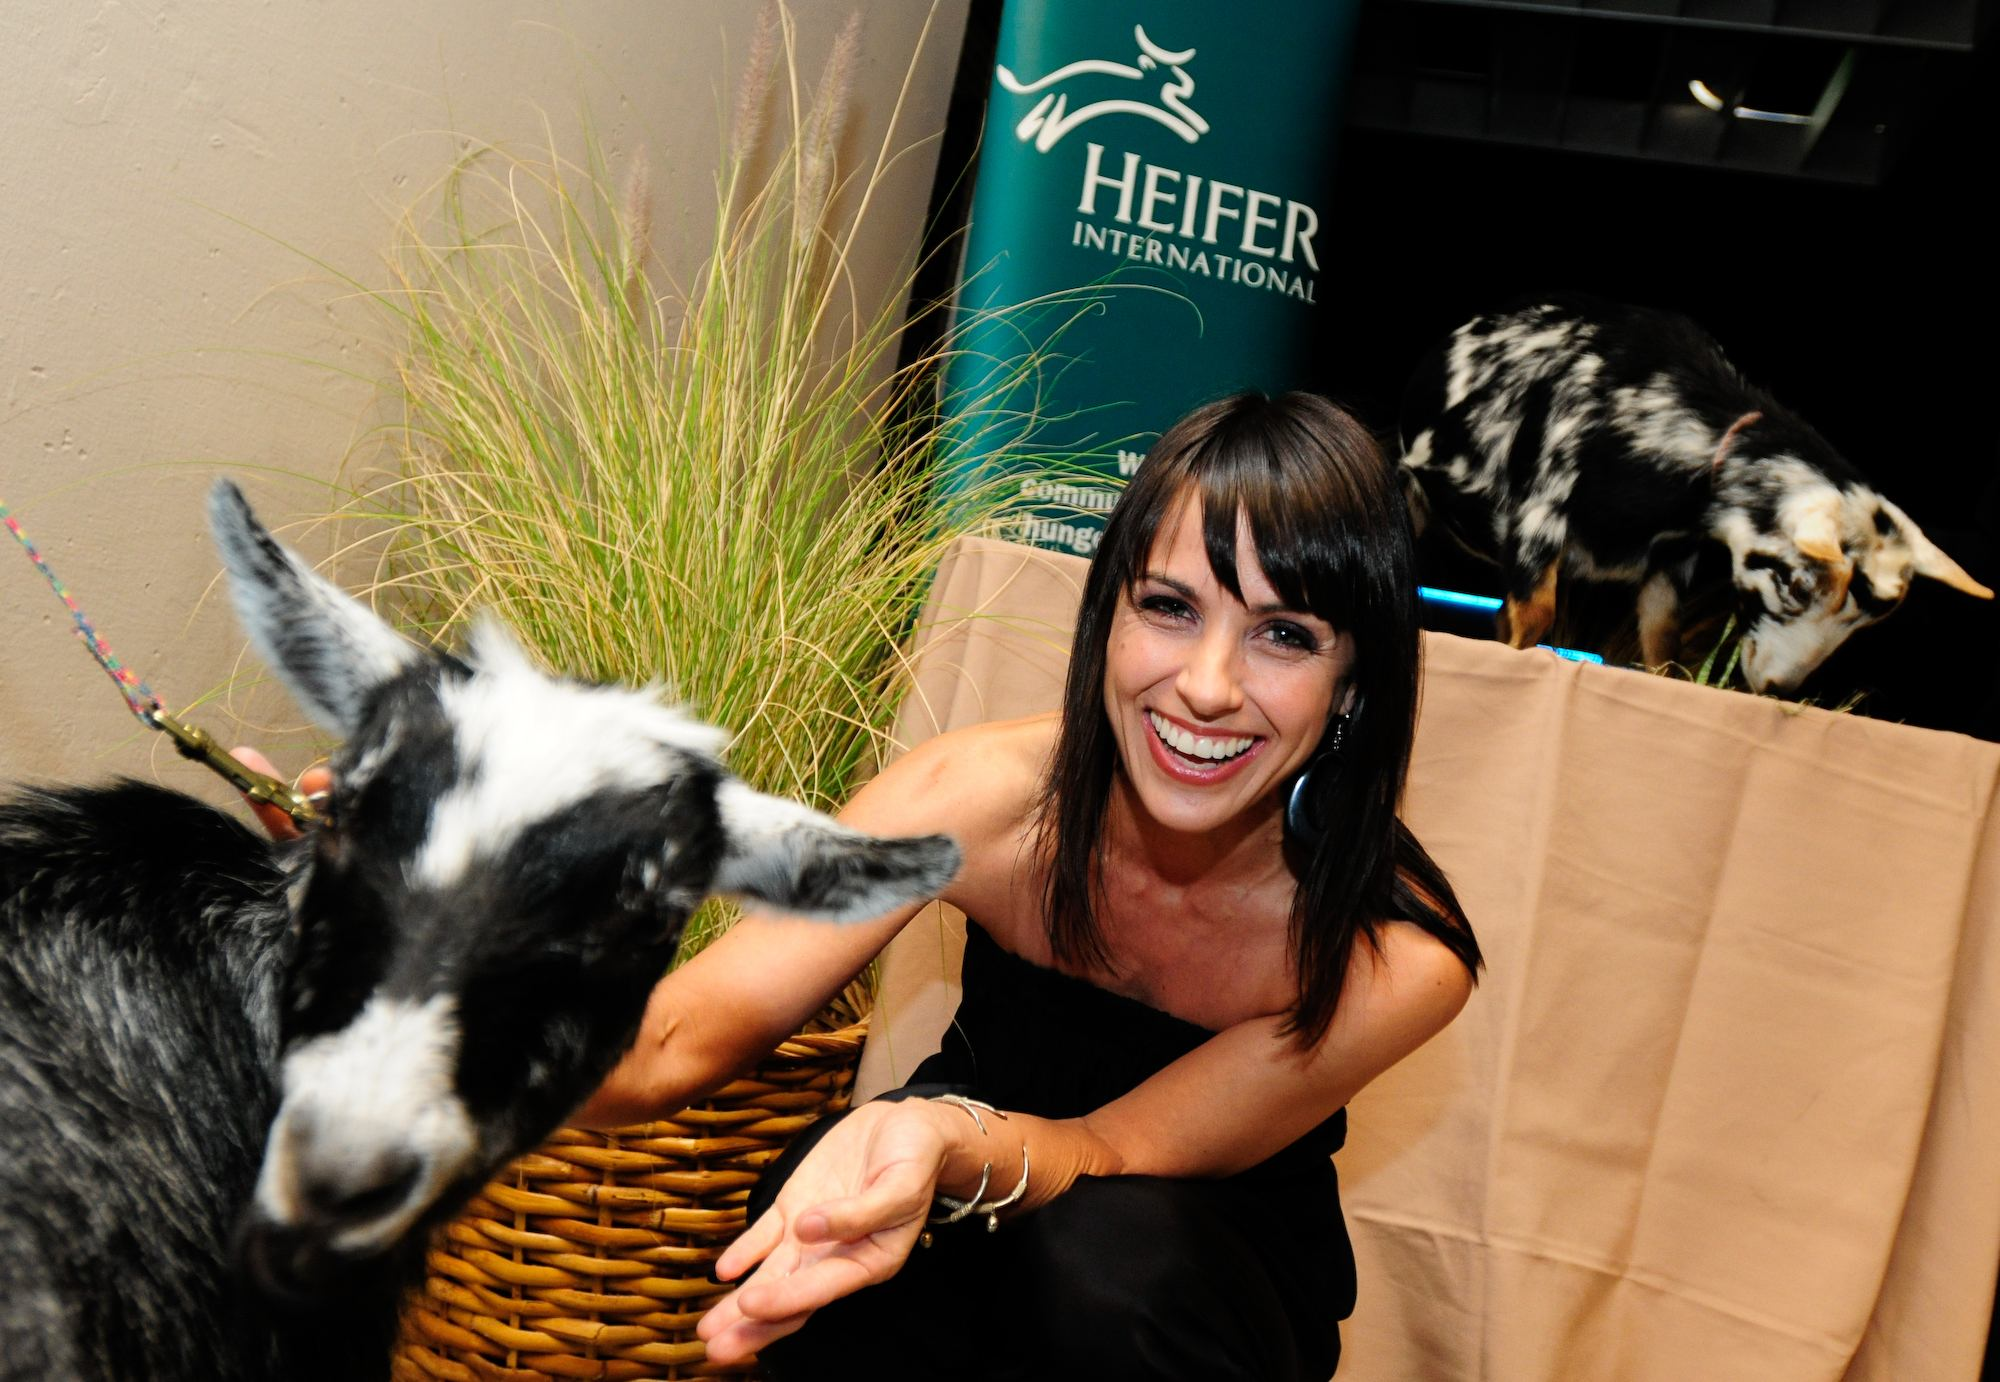 Heifer International Approved Photos - Constance Zimmer, Photo # 6 LA 12 Stones event 11-5-09 216.jpg